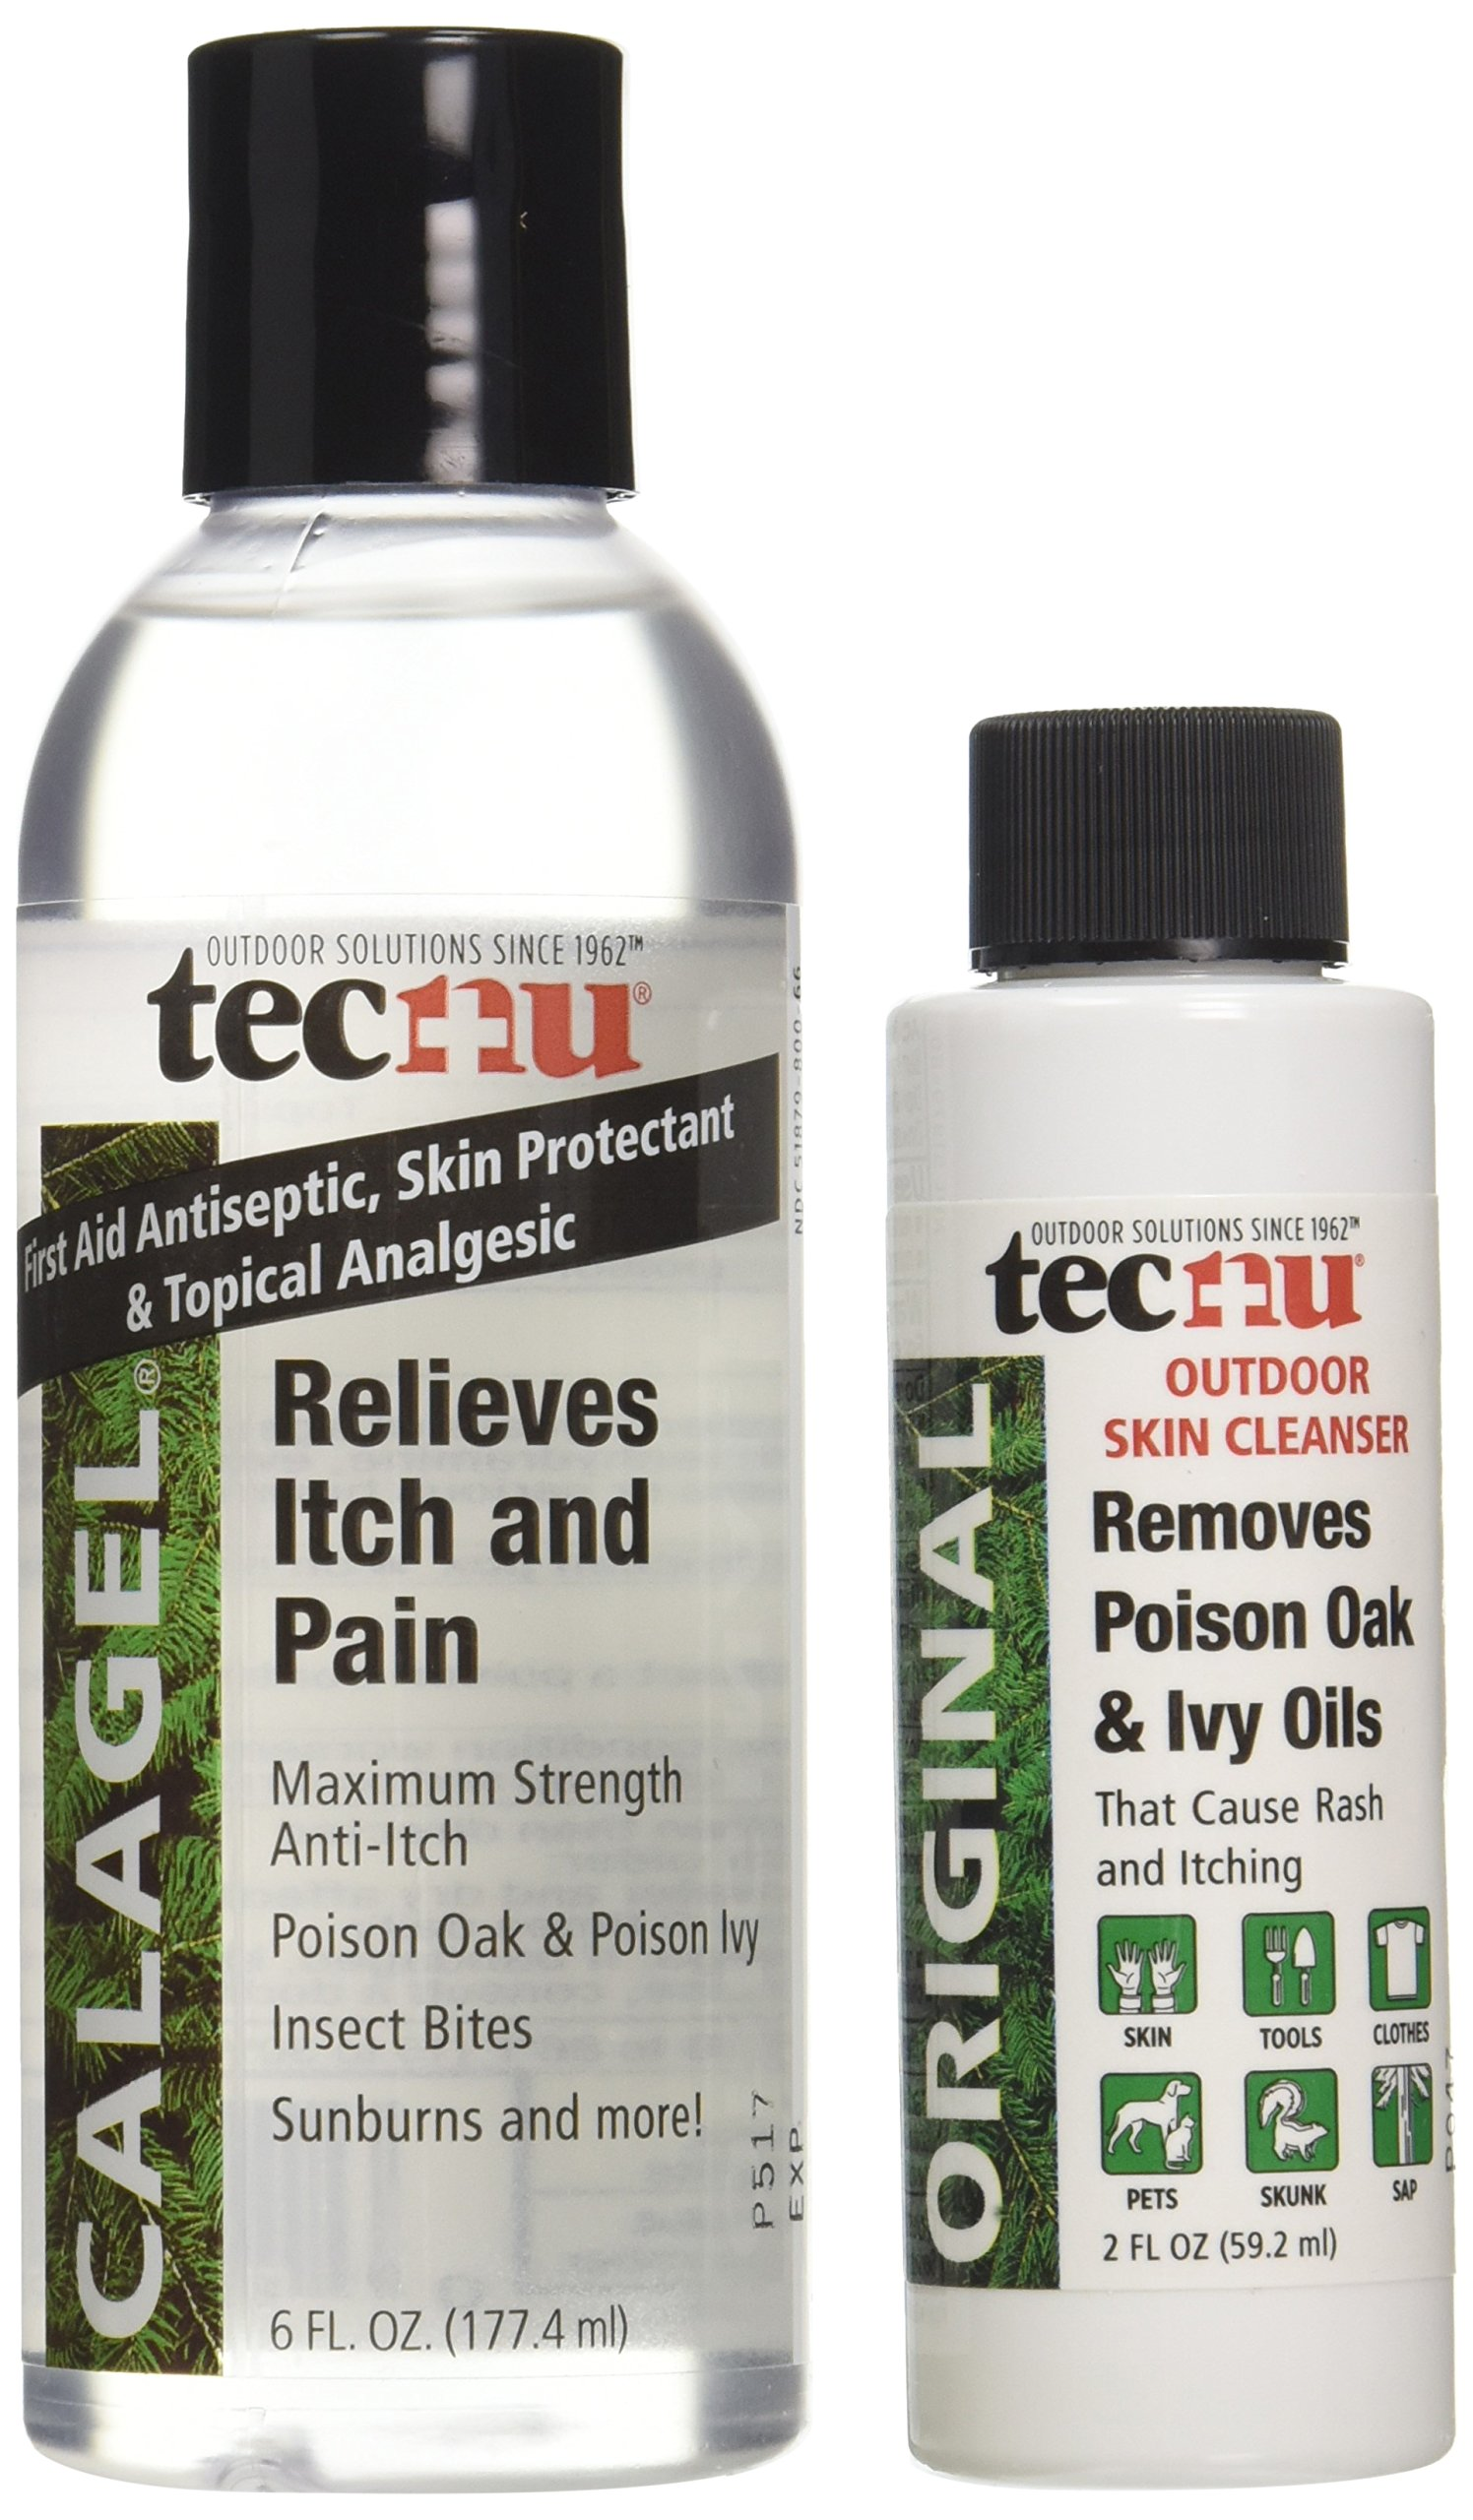 GRABBER OUTDOORS Calagel Anti-Itch Gel with Free Tecnu Outdoor Skin Cleanser, 3 Count